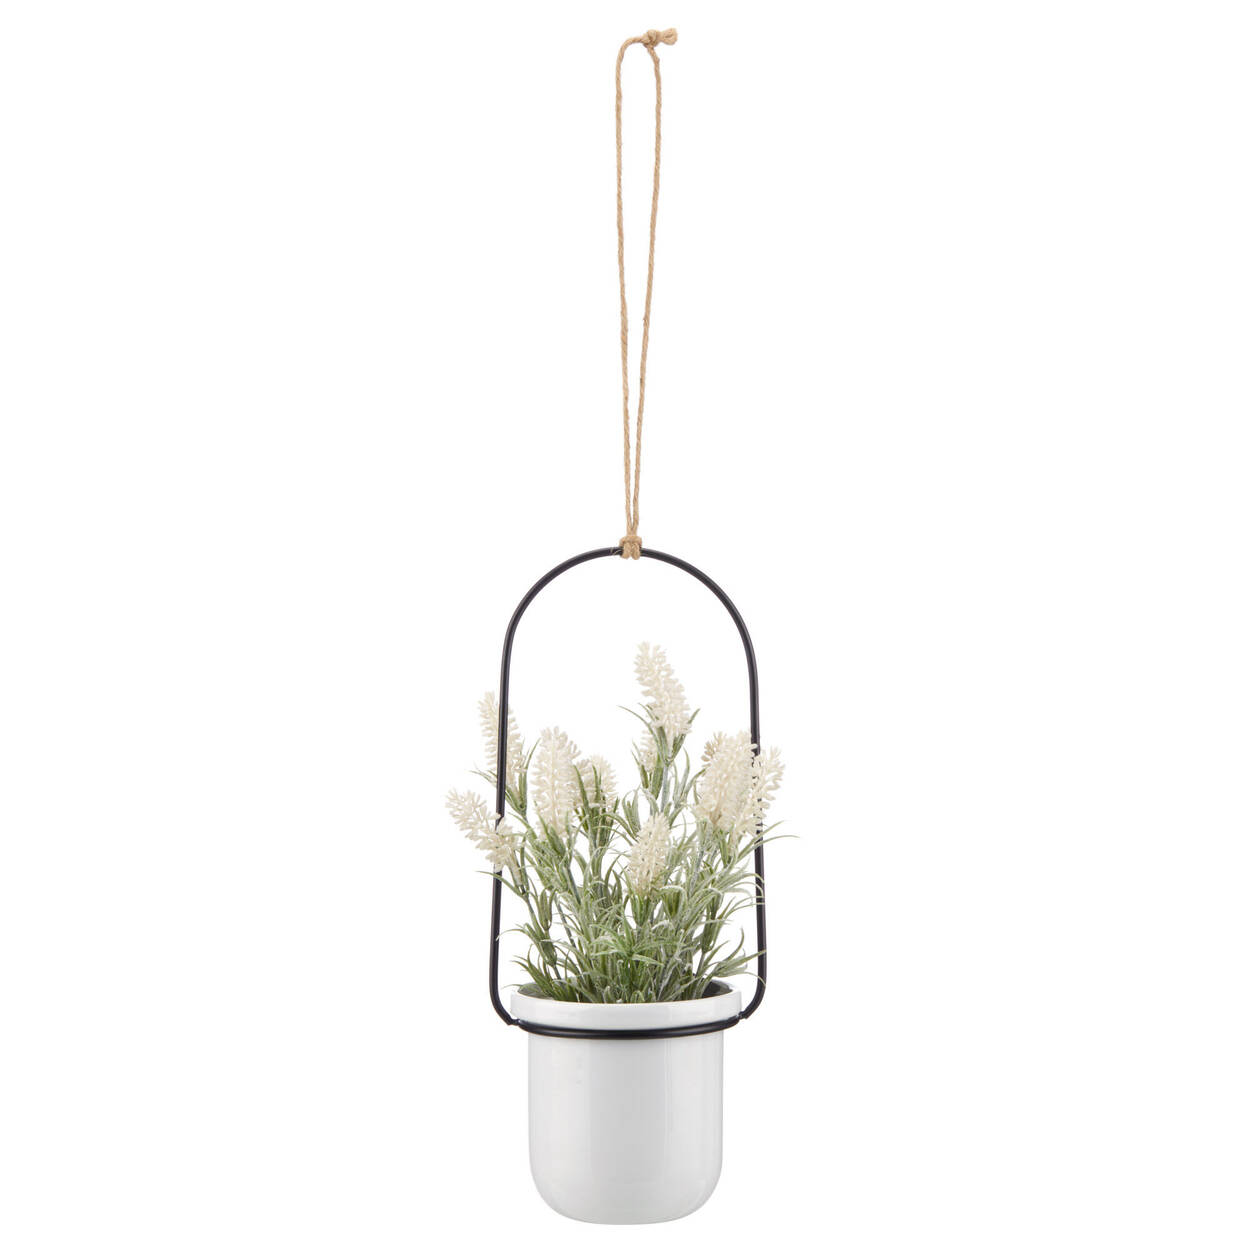 Hanging Flower in a Pot